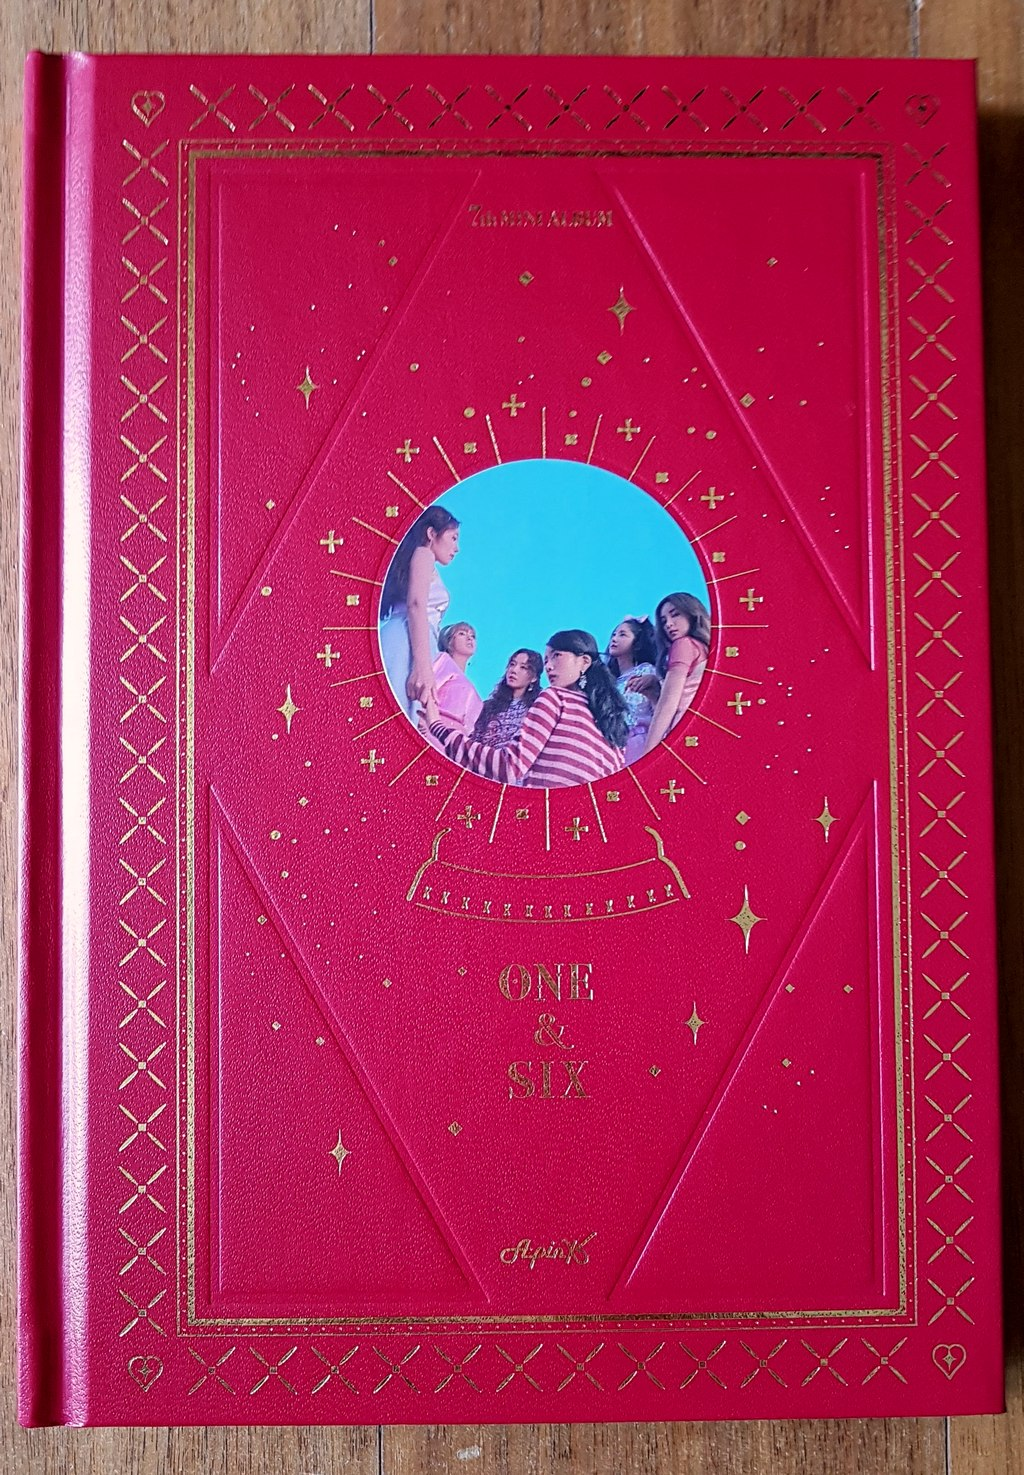 에이핑크 (Apink) - 7th Mini Album [ONE & S..